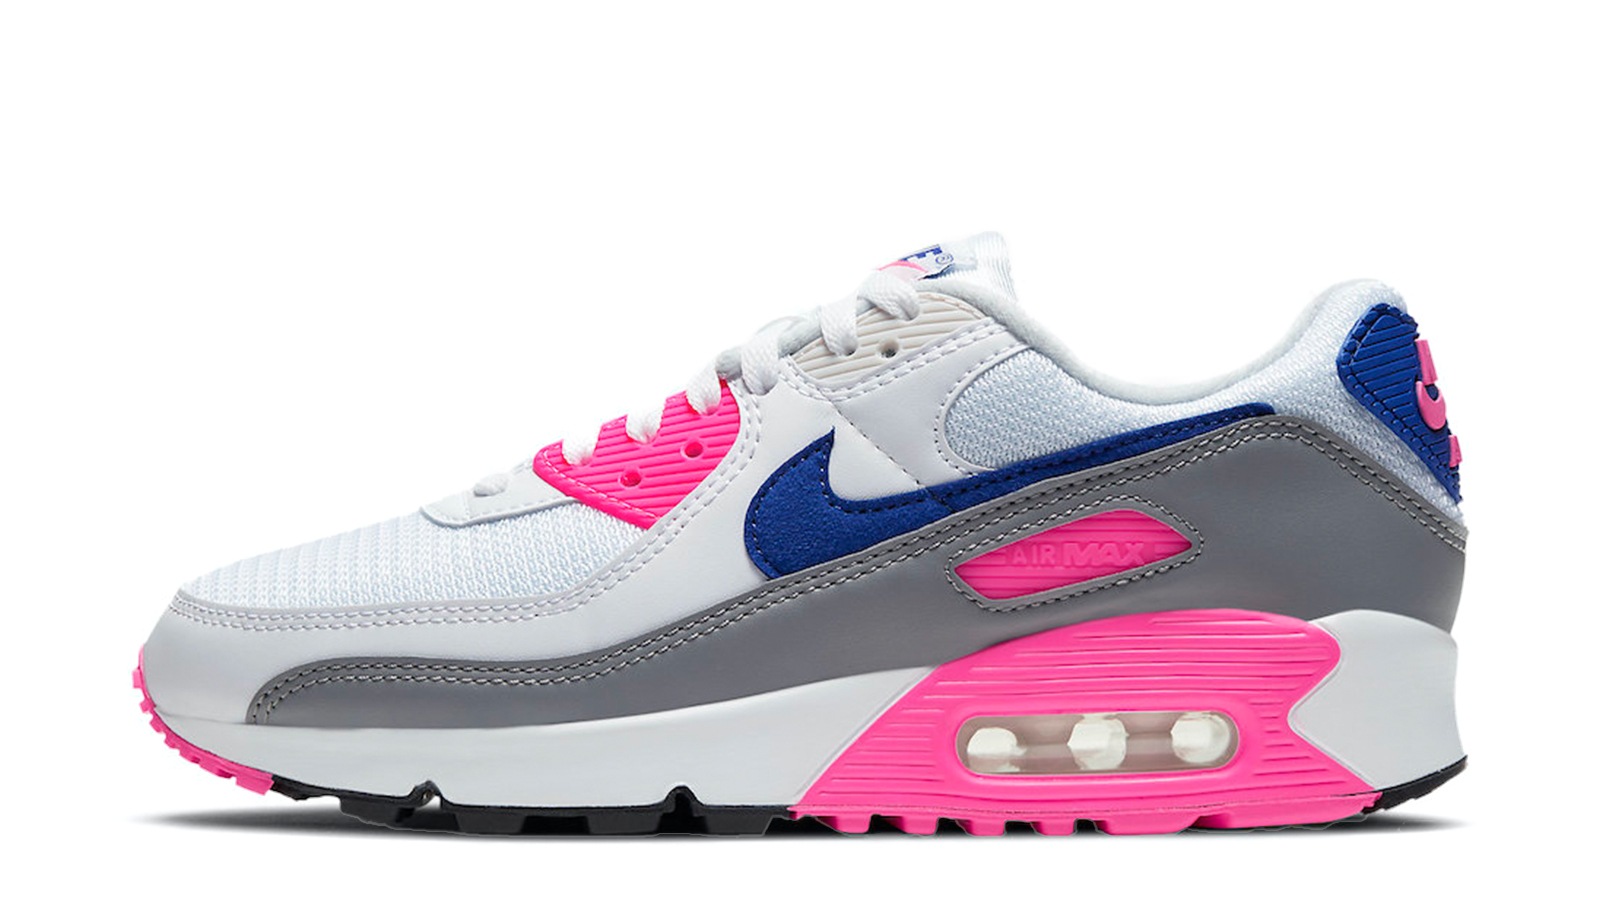 Nike Air Max 90 OG III WMNS Concord Pink Blast CT1887-100